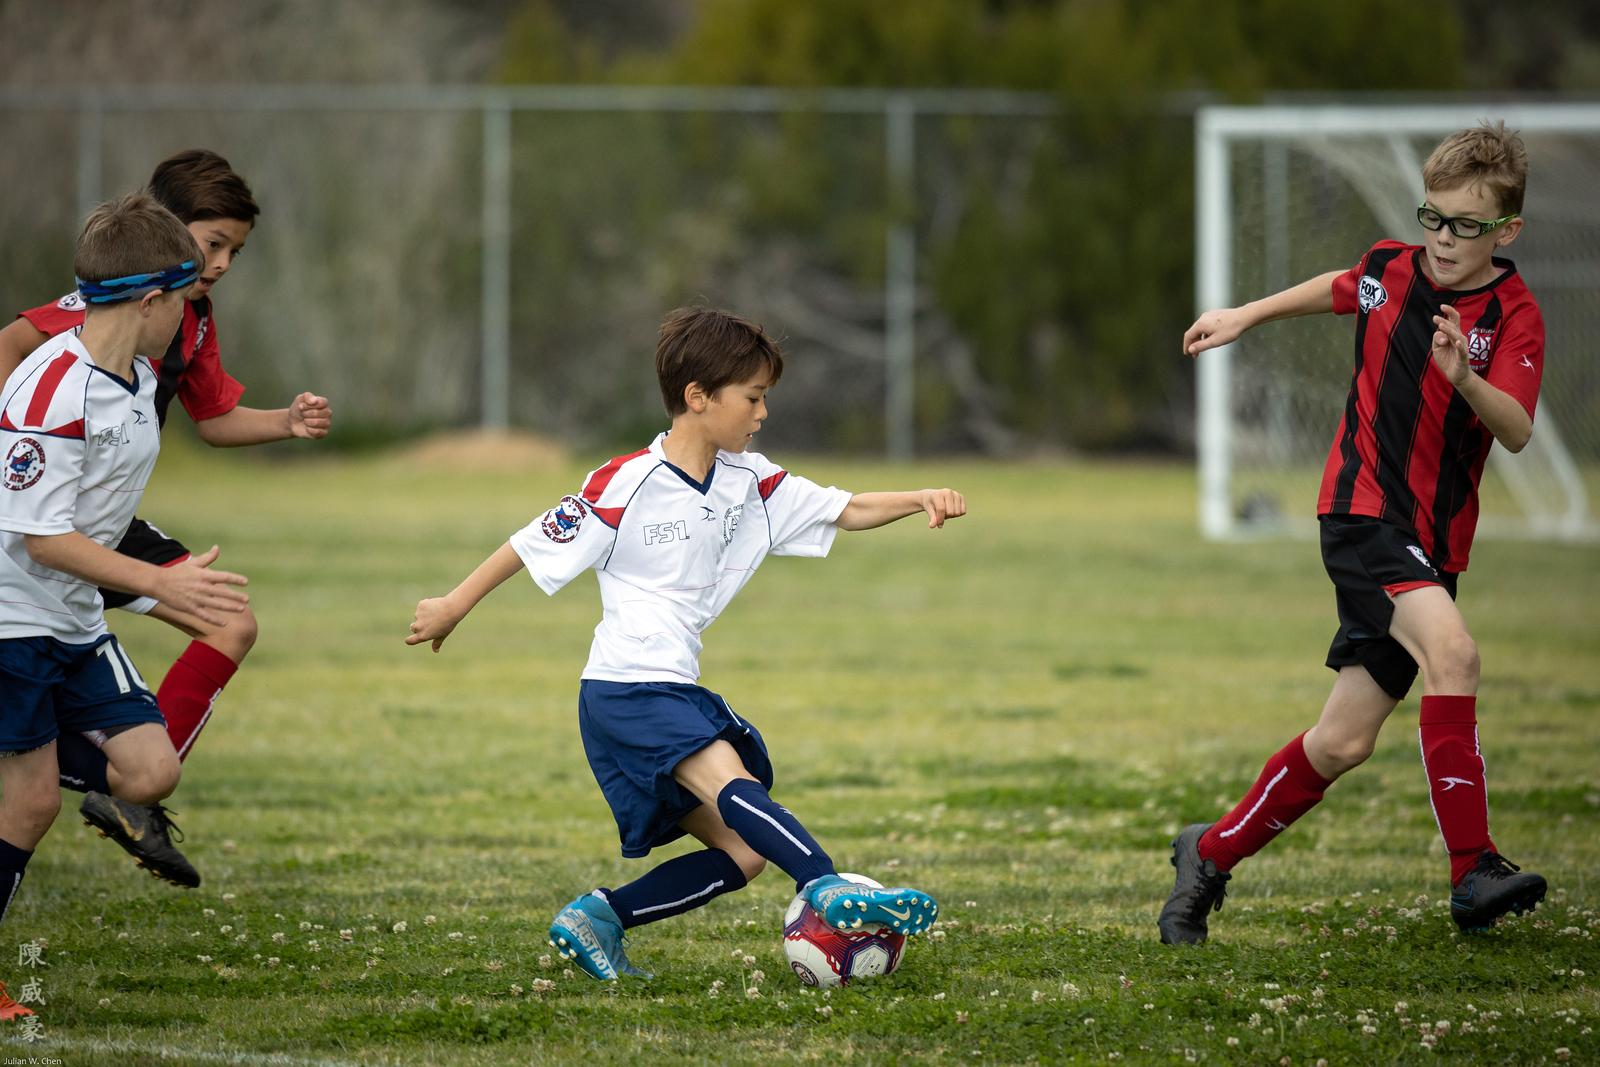 IMAGE: https://photos.smugmug.com/Photography/Sports/2020-AYSO-Renegades/i-82Nd7CX/0/f90a2624/X3/20200223-Canon%20EOS-1D%20X%20Mark%20III-1DX30358-X3.jpg